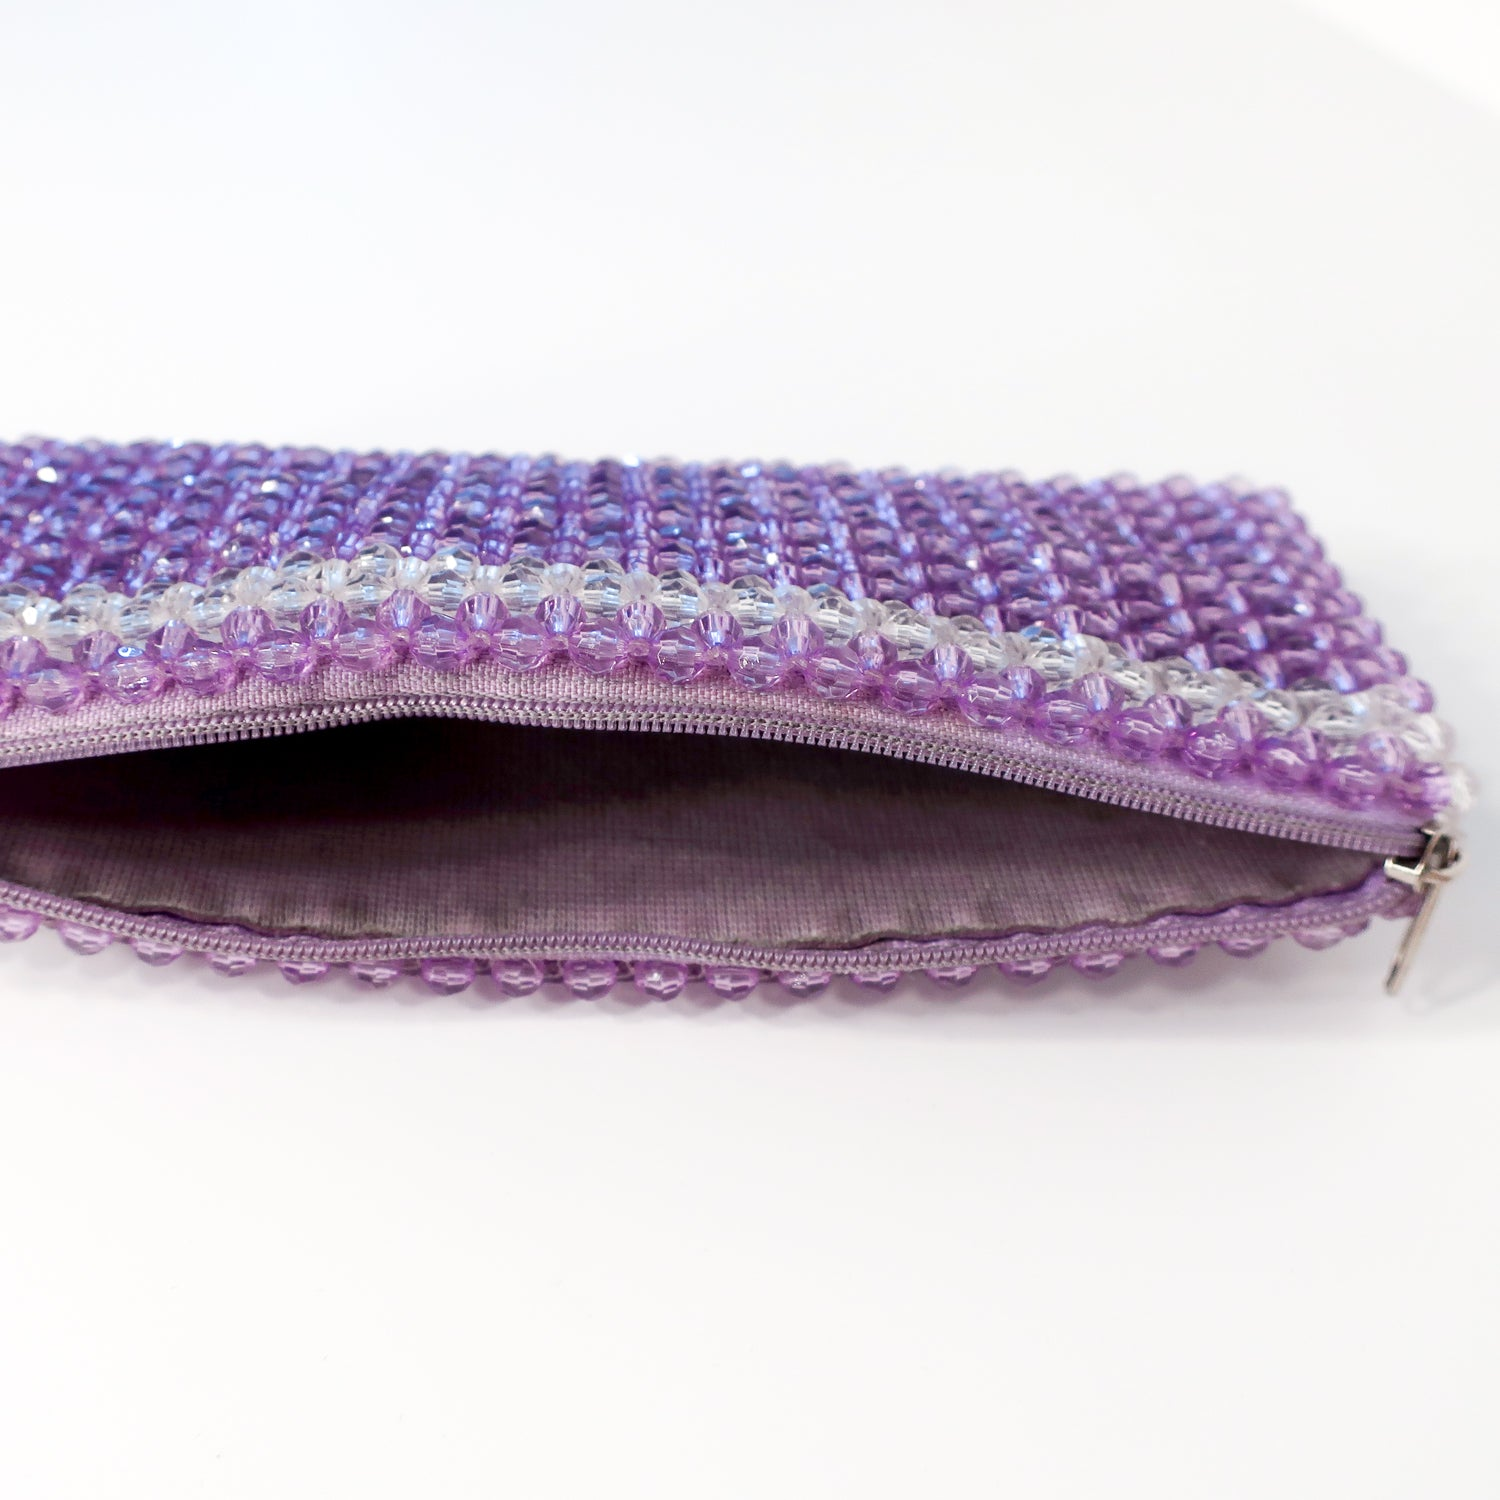 Second Room Vintage Clothing. This super cute purple and clear acrylic beaded pouch would make a great wallet, or coin purse, or could even store a few lipsticks. It has a zipper closure, and just one main interior compartment. Free North American shipping on all orders.